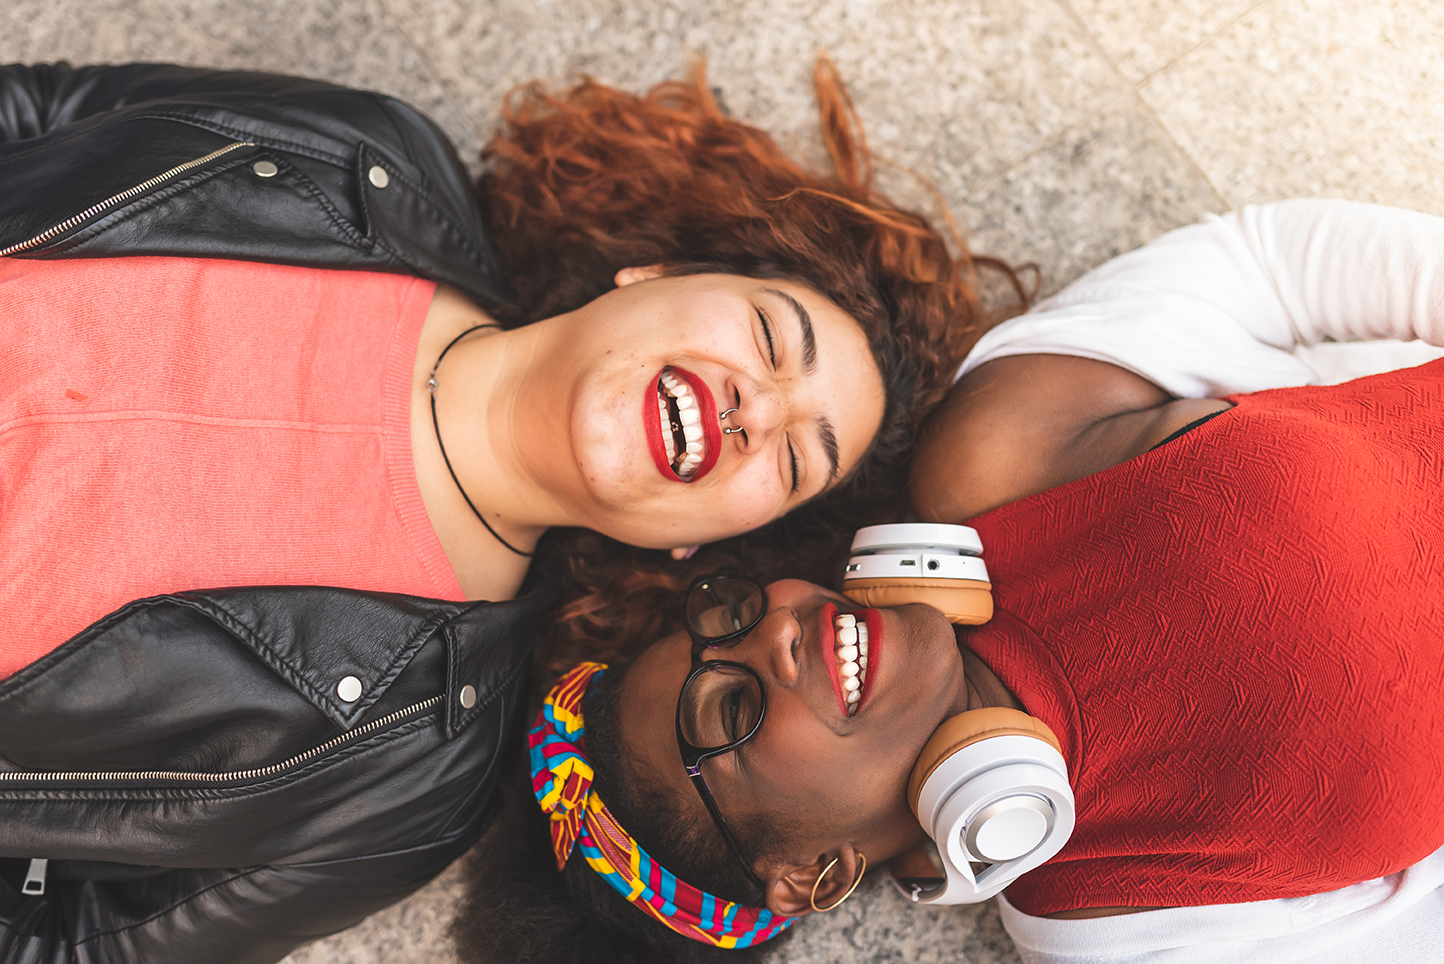 Two Teenage Girls Laying Down ; Looking Each Other and Smiling.